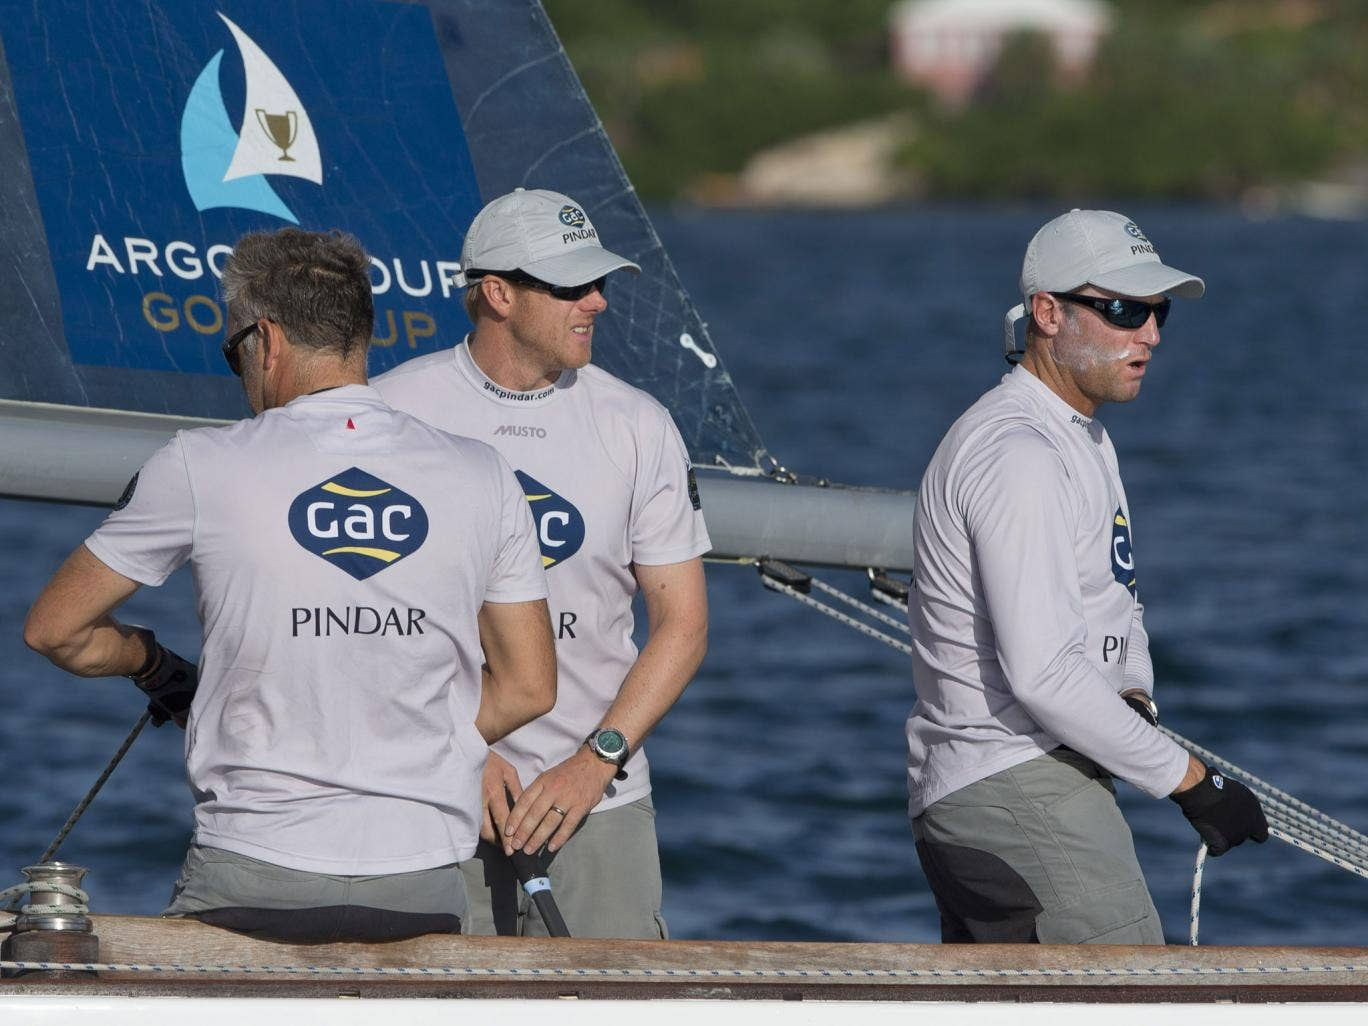 Spitting tacks, defending world match racing champion Ian Williams picked his own quarter final executioner when being knocked out of the Argo Group Gold Cup in Bermuda by his closest rival in the Alpari World Match Racing Tour, Taylor Canfield of the US